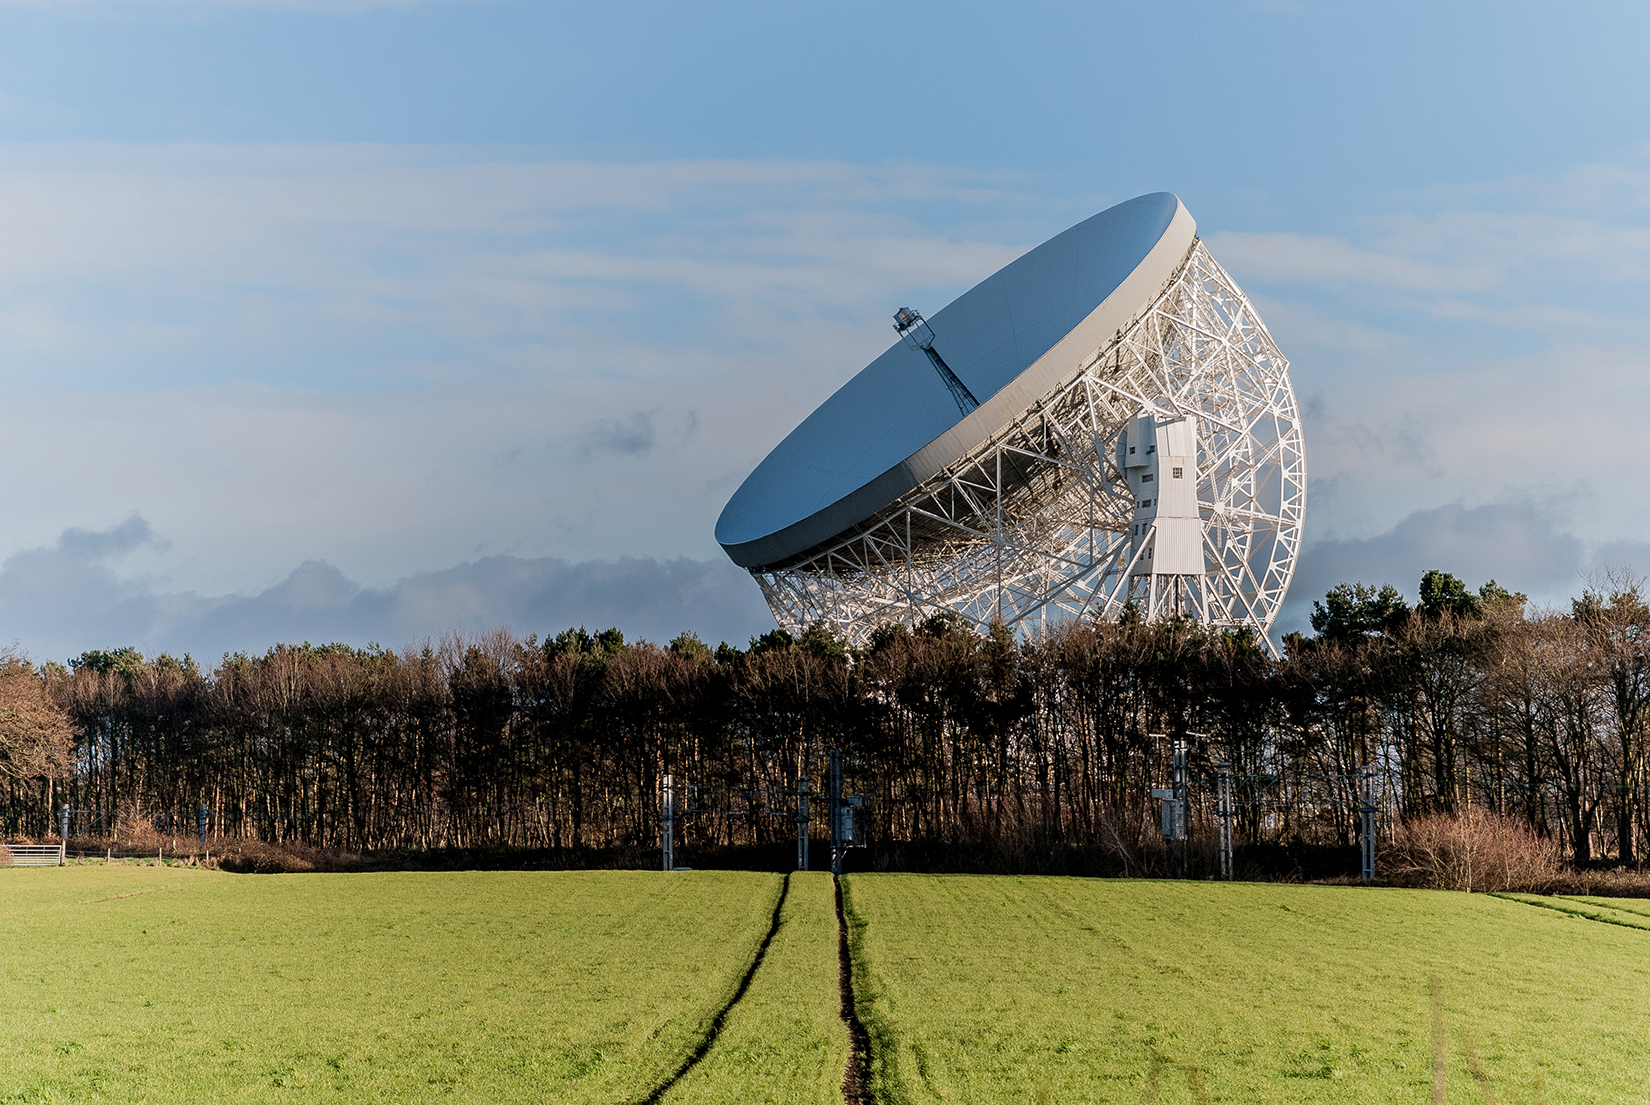 The Lovell Telescope at Jodrell Bank Observatory